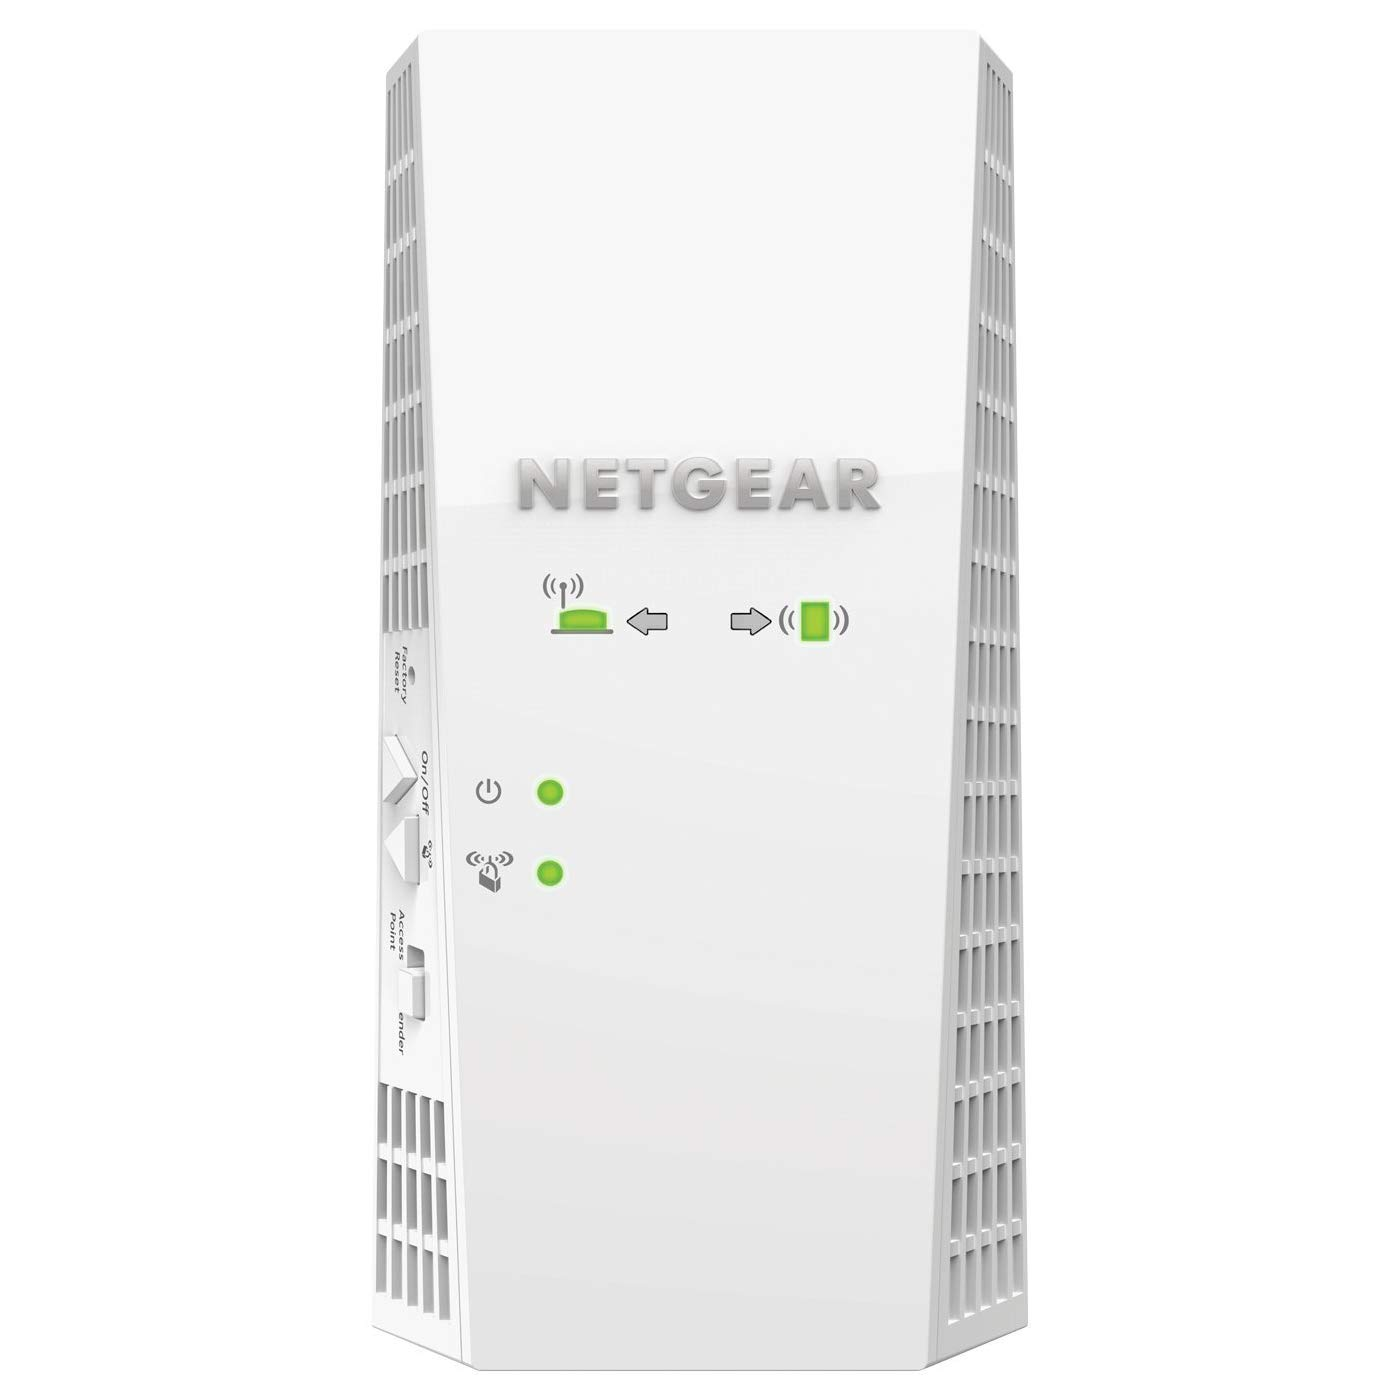 NETGEAR AC2200 Mesh WiFi Extender, Seamless Roaming, One WiFi Name, Works with Any WiFi Router. Create Your own Mesh WiFi System (EX7300) (Certified Refurbished)